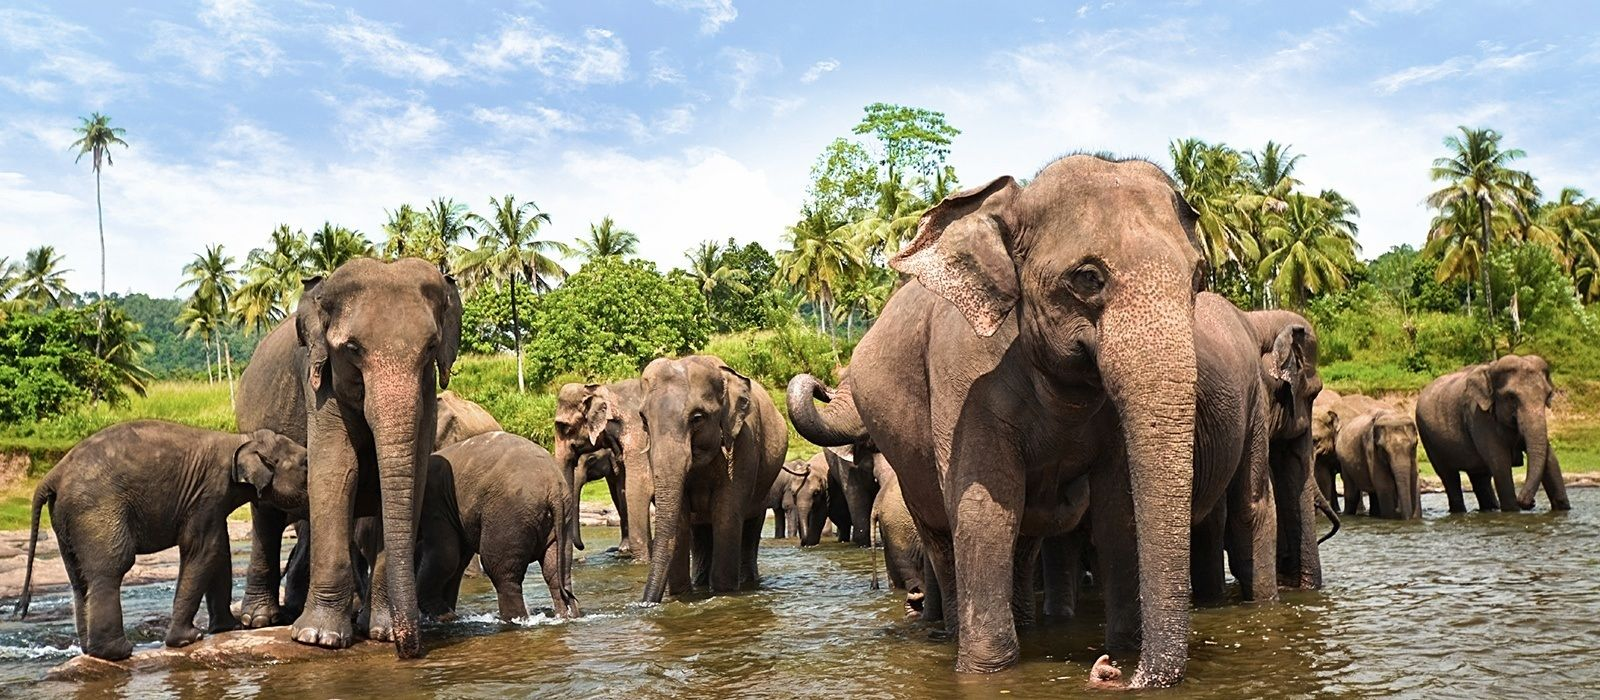 Wildlife Experiences in Sri Lanka That Should Not Be Missed